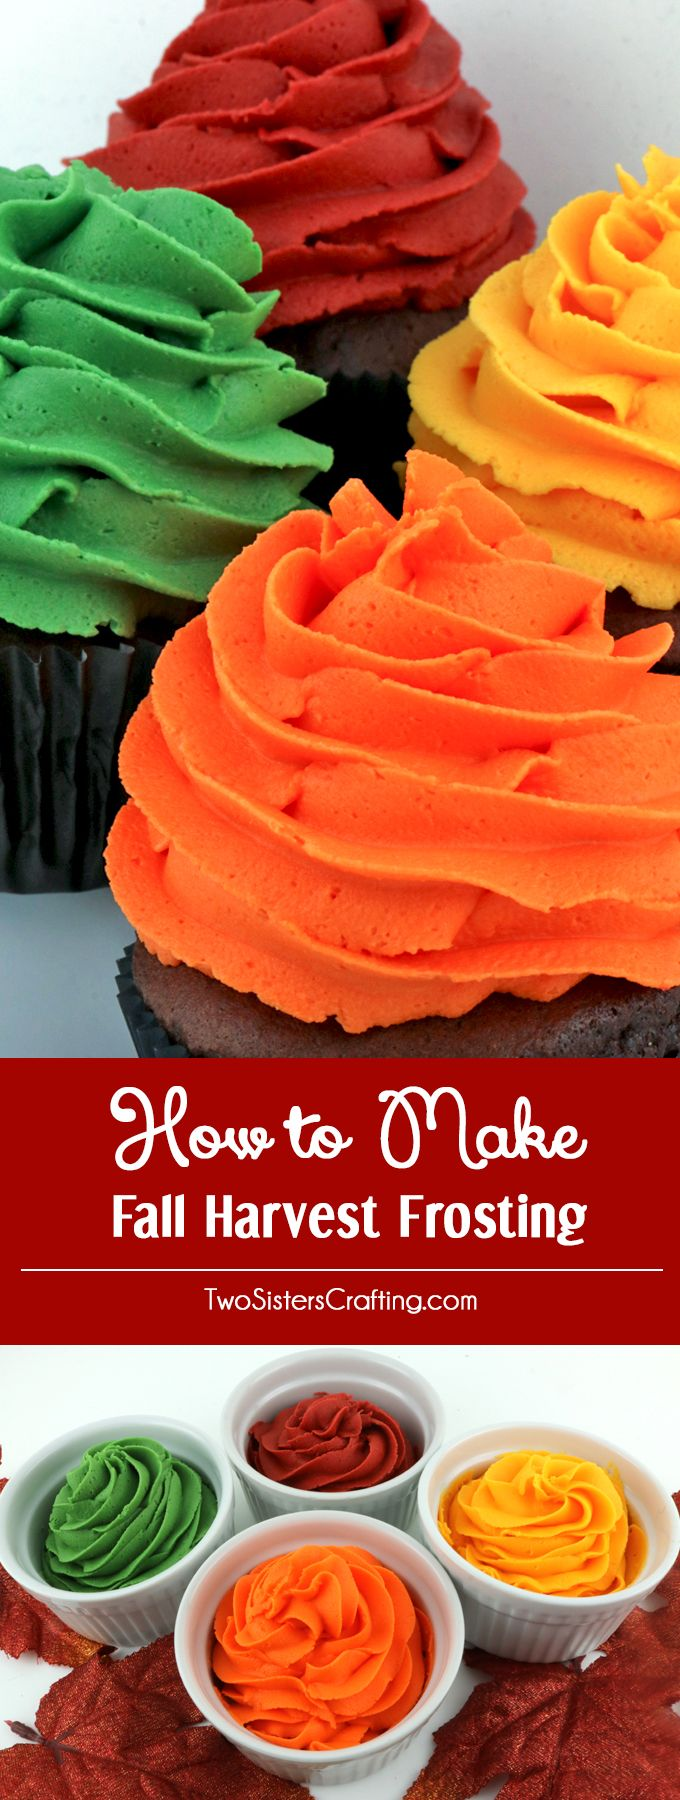 How to Make Fall Harvest Frosting - use our formula to make delicious and gorgeous Fall Harvest colored frosting for Fall and Thanksgiving desserts.  Burgundy, Sage, Gold and Orange Frosting couldn't be easier with our delicious Buttercream Frosting recipe and our tried and true food coloring formulas.  Turn your Fall treats and Thanksgiving desserts from fine to spectacular with our Fall Harvest icing recipes.  Pin this Thanksgiving Frosting Recipe for later and follow us for more great…